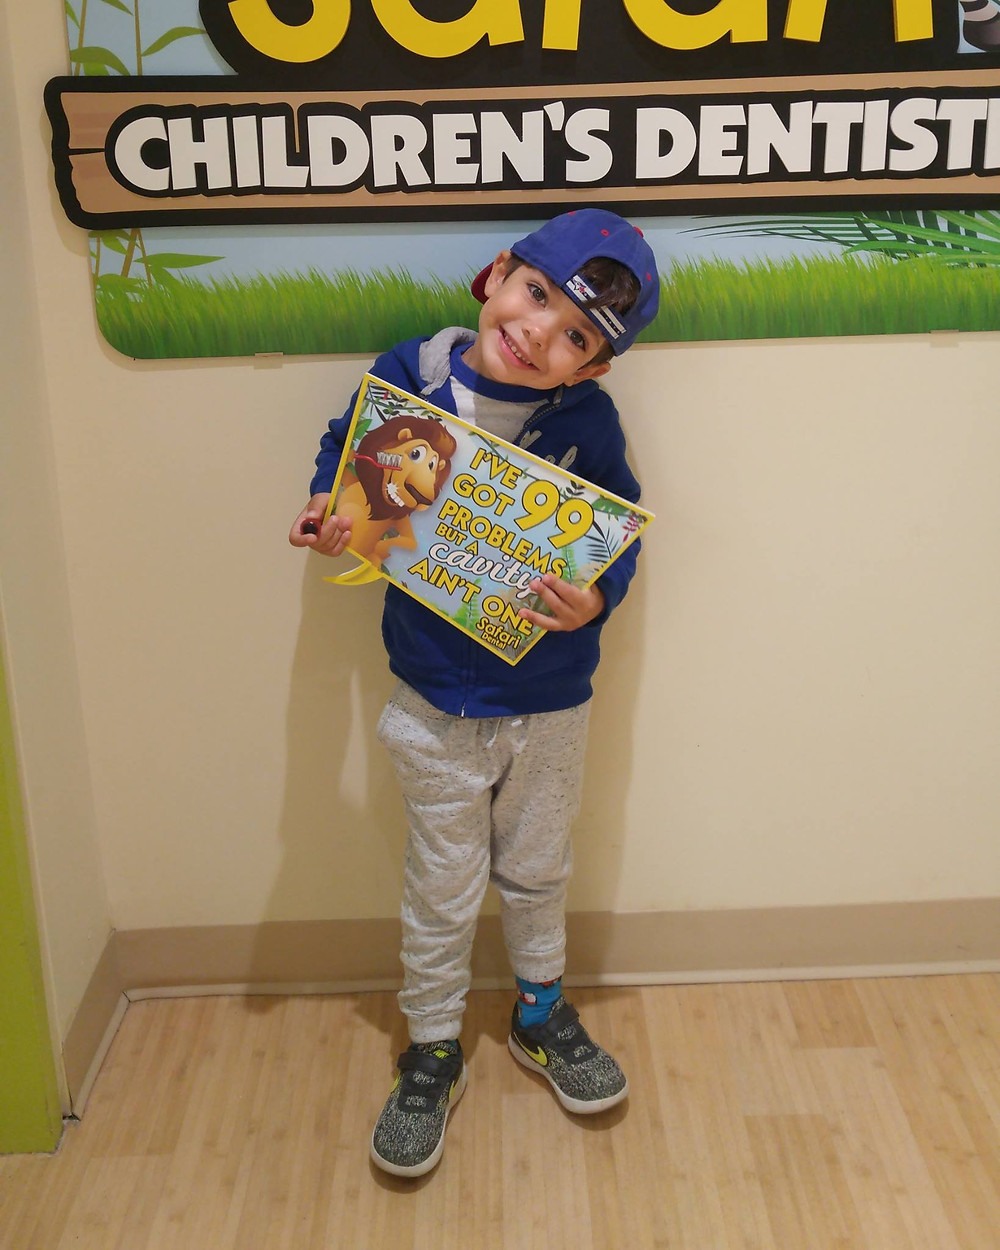 Milton Pediatric Dentists